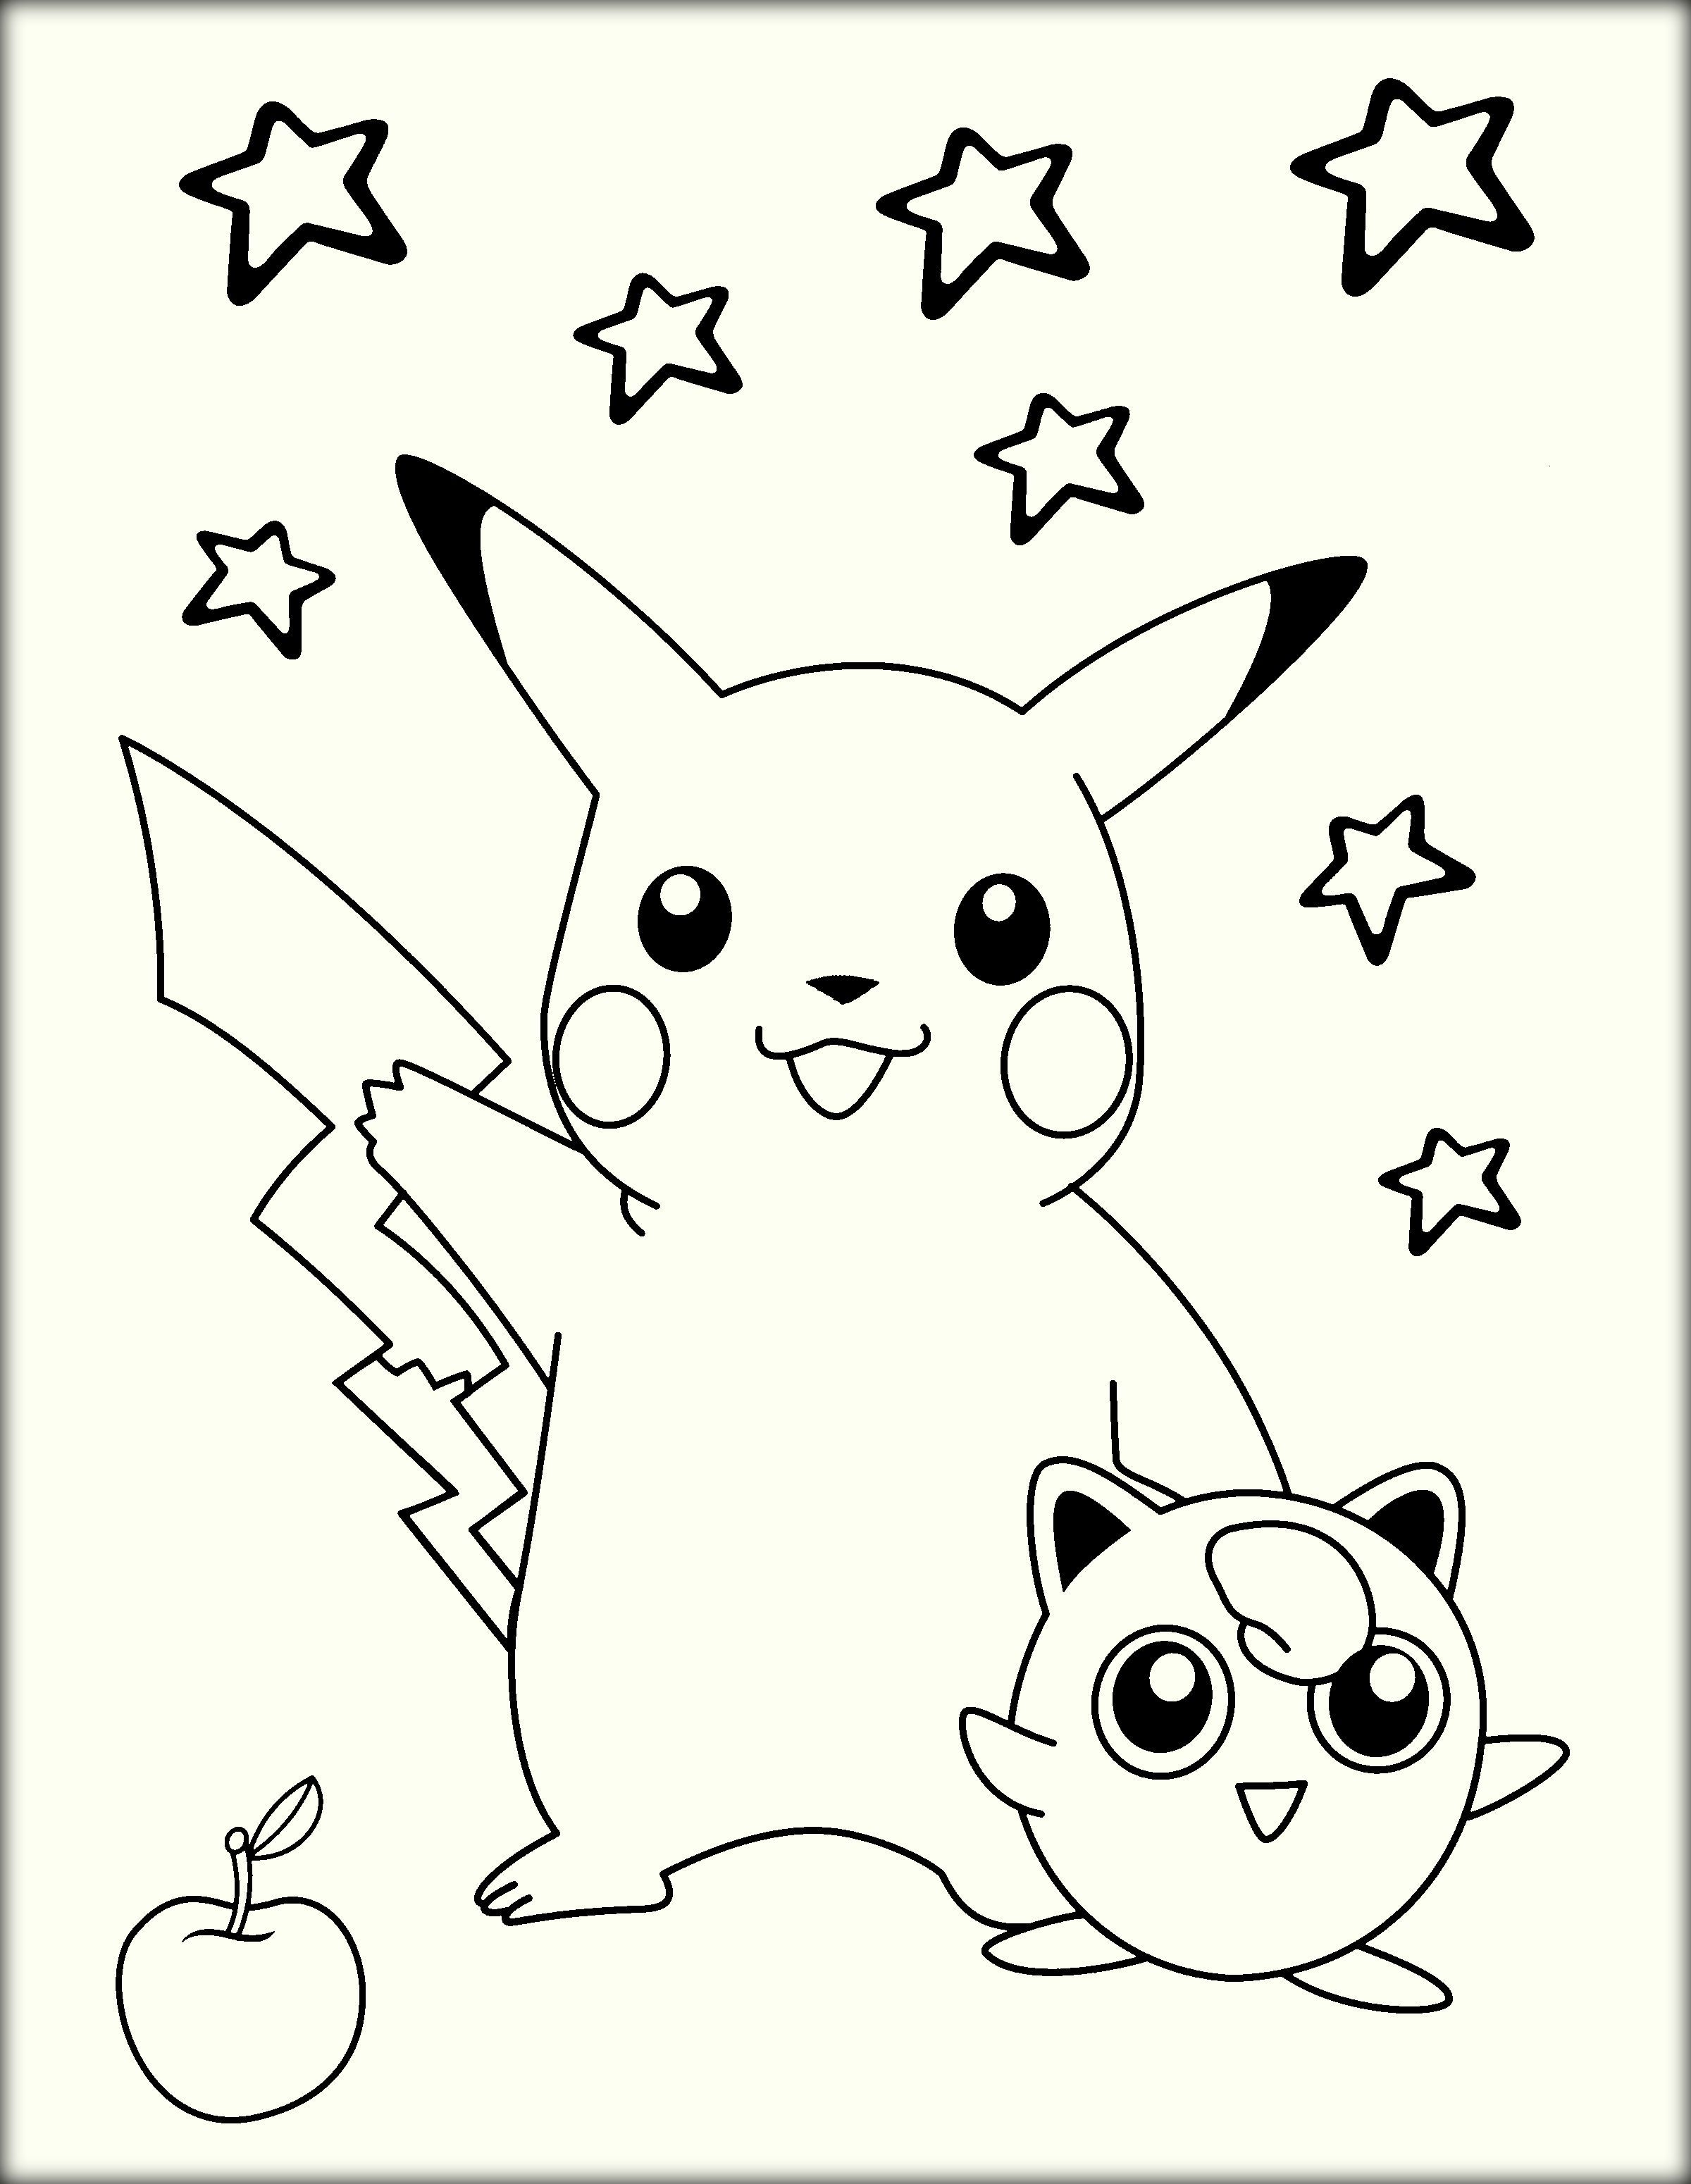 27 Inspiration Image Of Free Printable Pokemon Coloring Pages Cizim